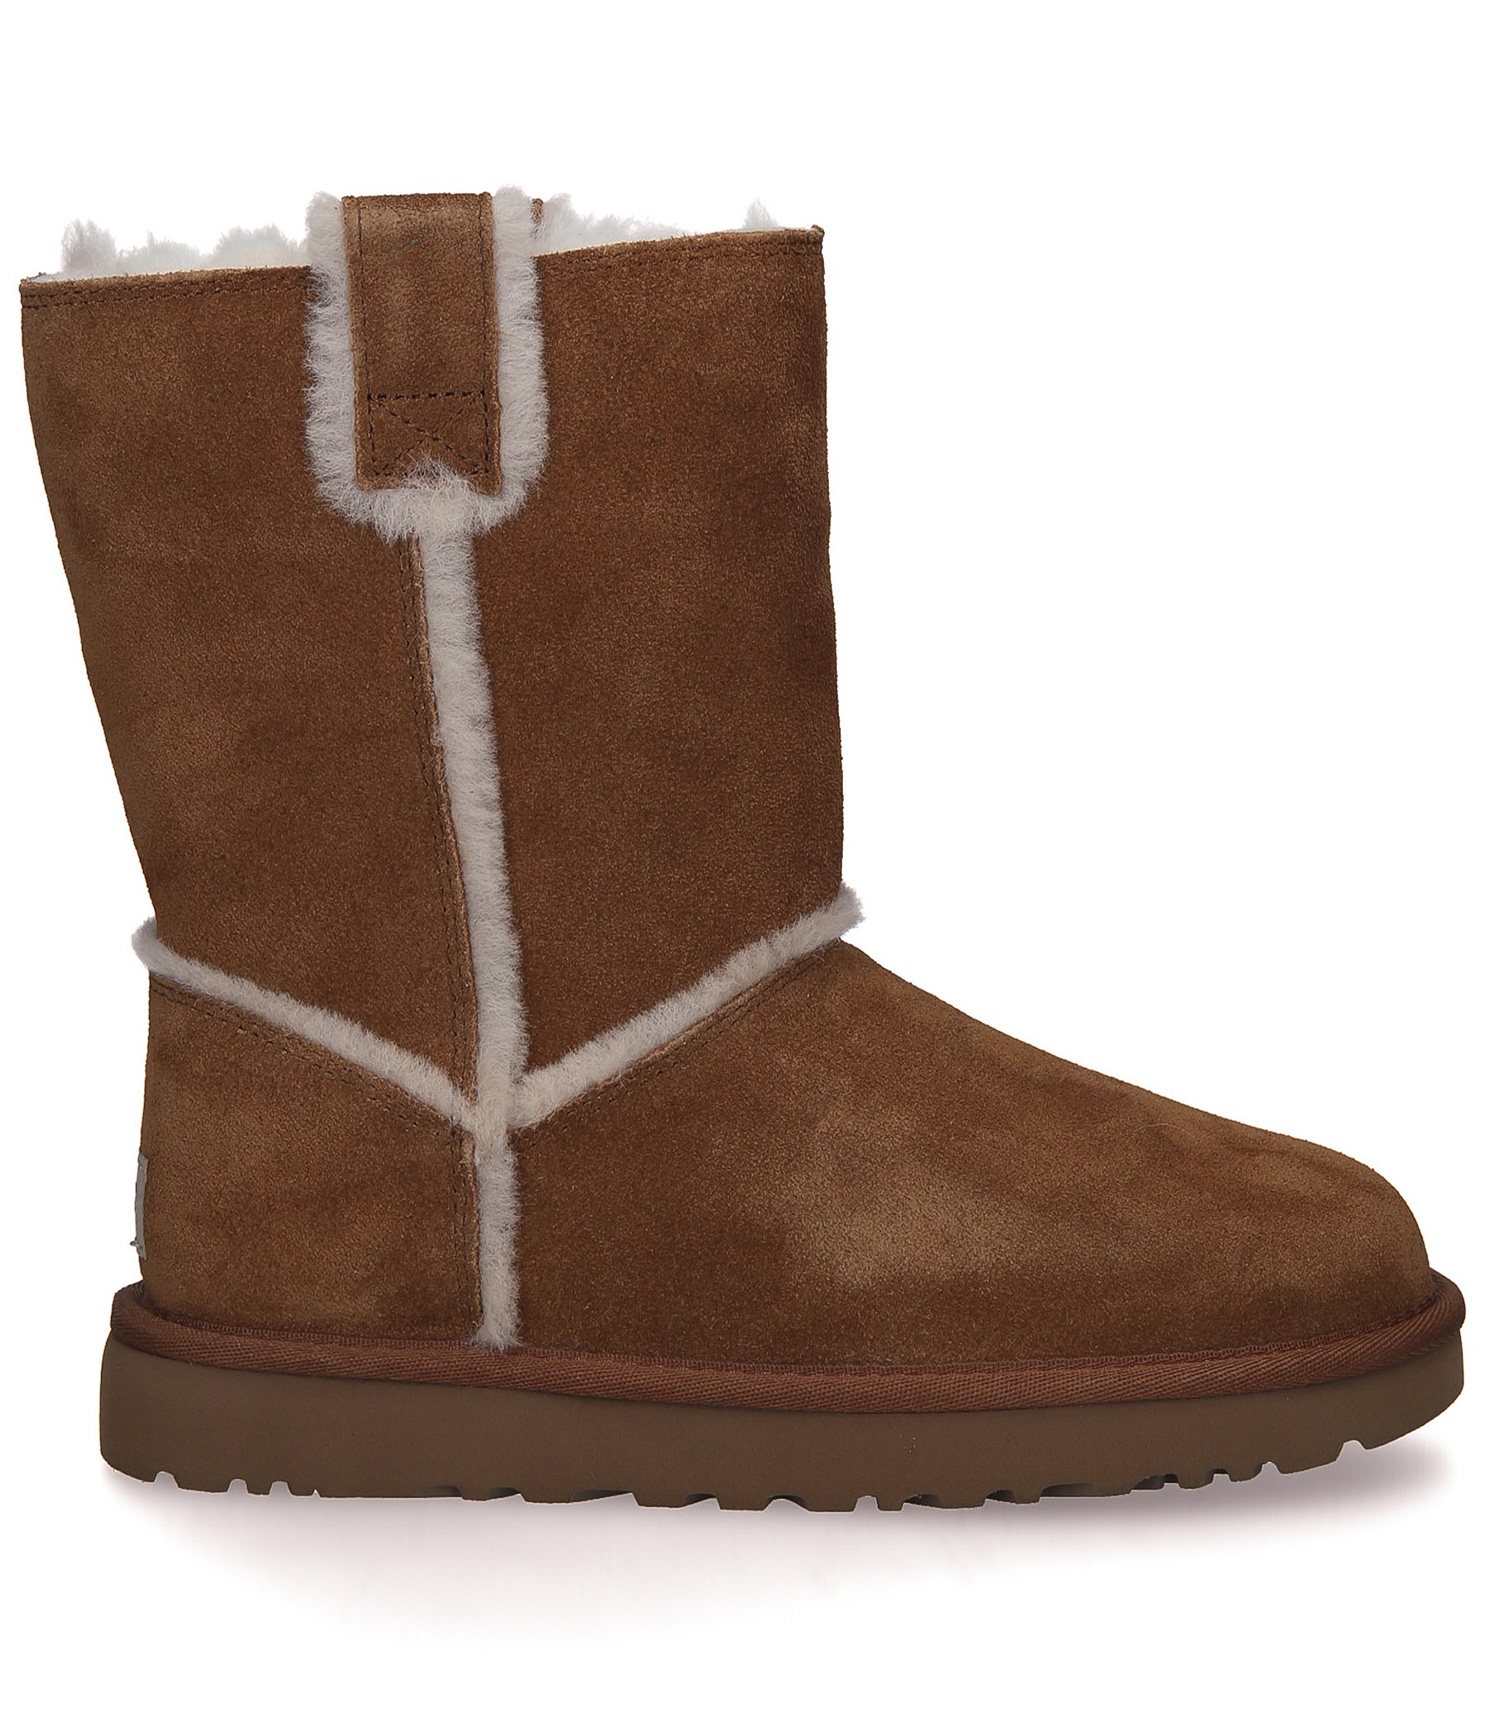 Botte Ugg Boutique Paris Ugg Classic Mini Spill Seam